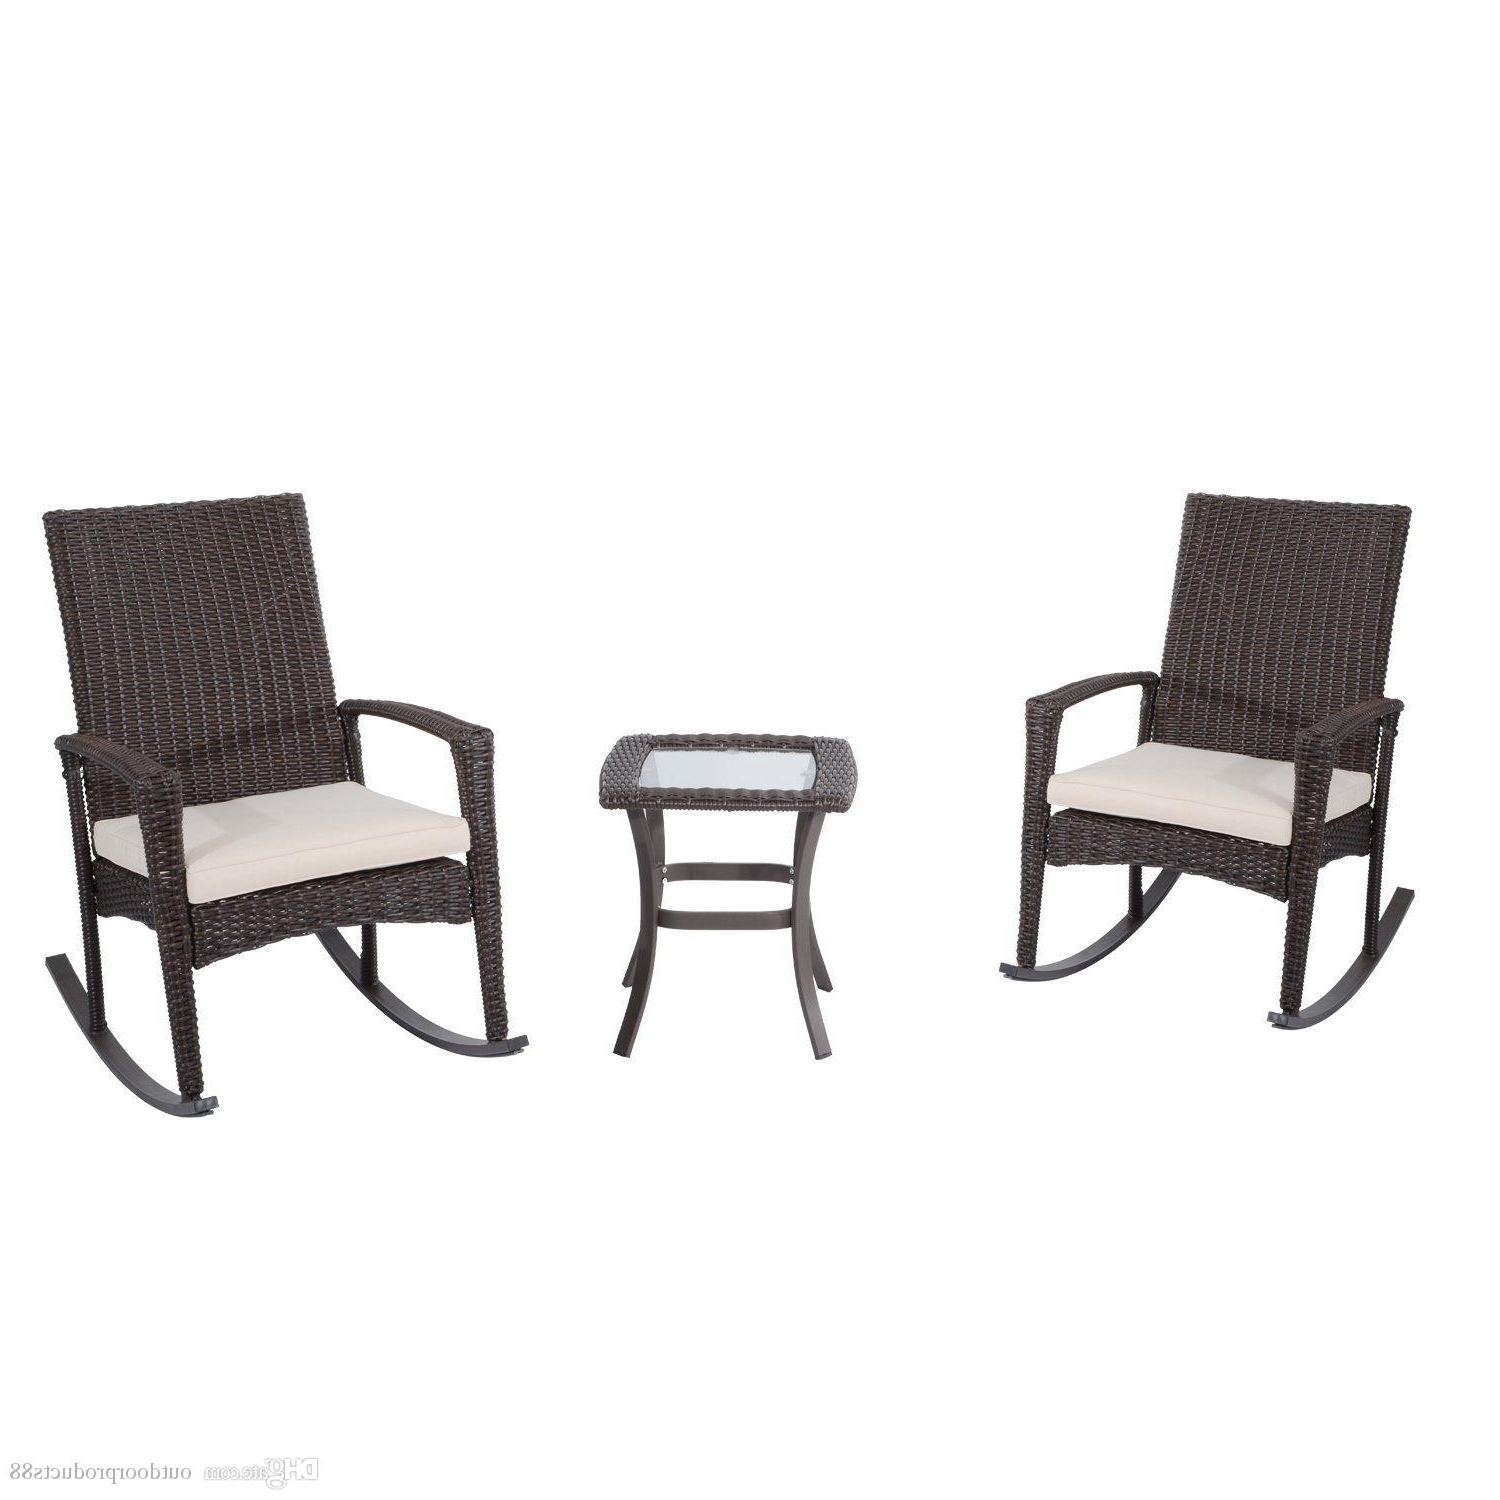 Outdoor Rocking Chairs With Table Regarding Preferred 2018 Outdoor Rocking Chair And Table Set,rocking Rattan Wicker Chiar (View 9 of 20)